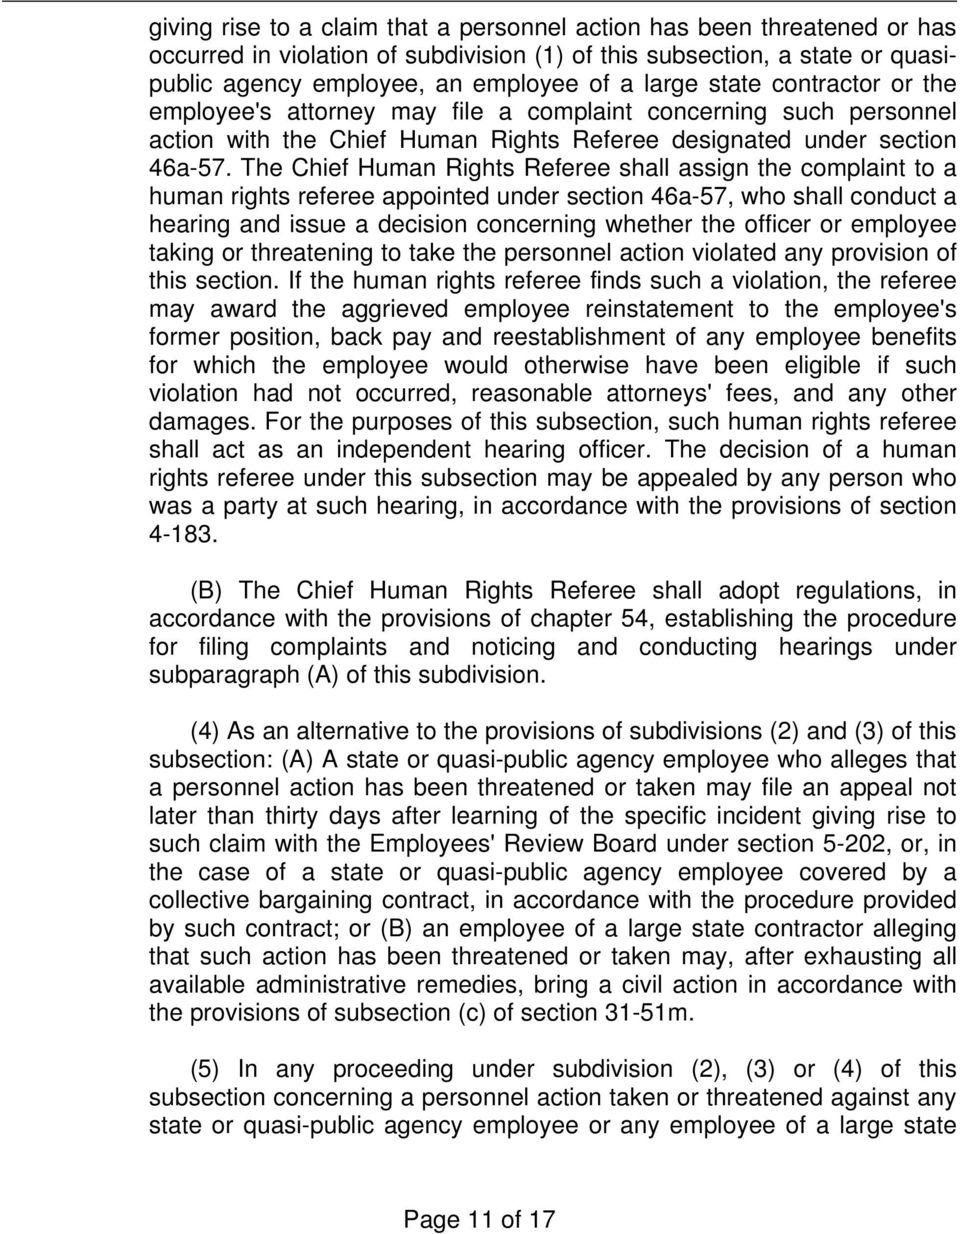 The Chief Human Rights Referee shall assign the complaint to a human rights referee appointed under section 46a-57, who shall conduct a hearing and issue a decision concerning whether the officer or